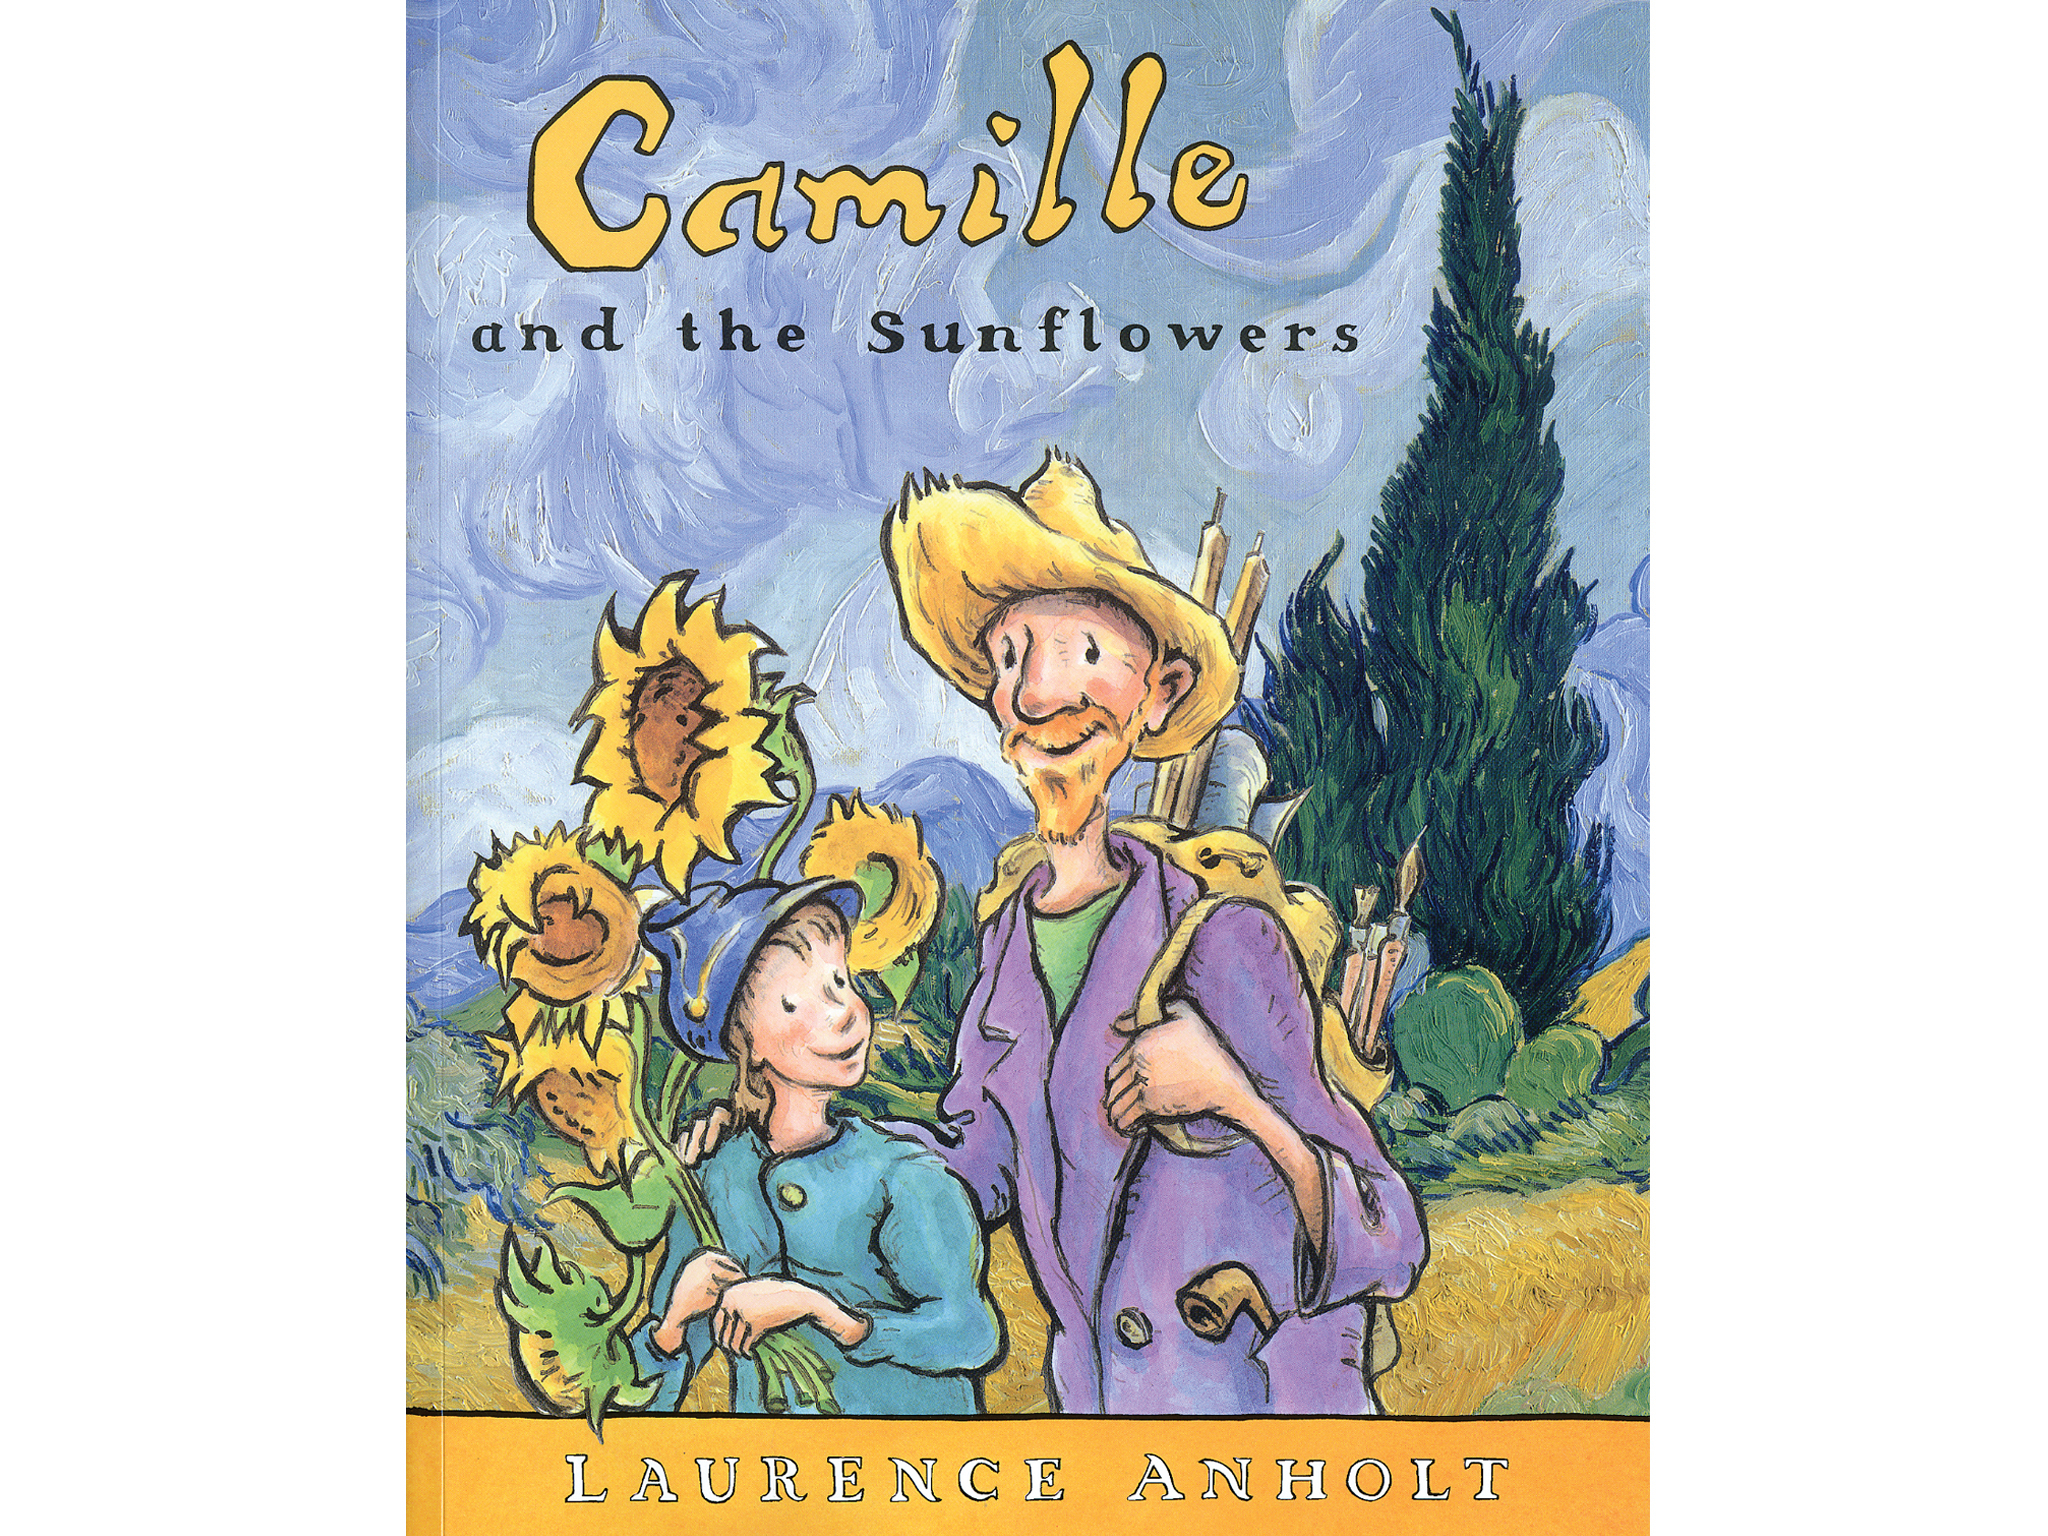 100 best children's books: Camille and the sunflowers